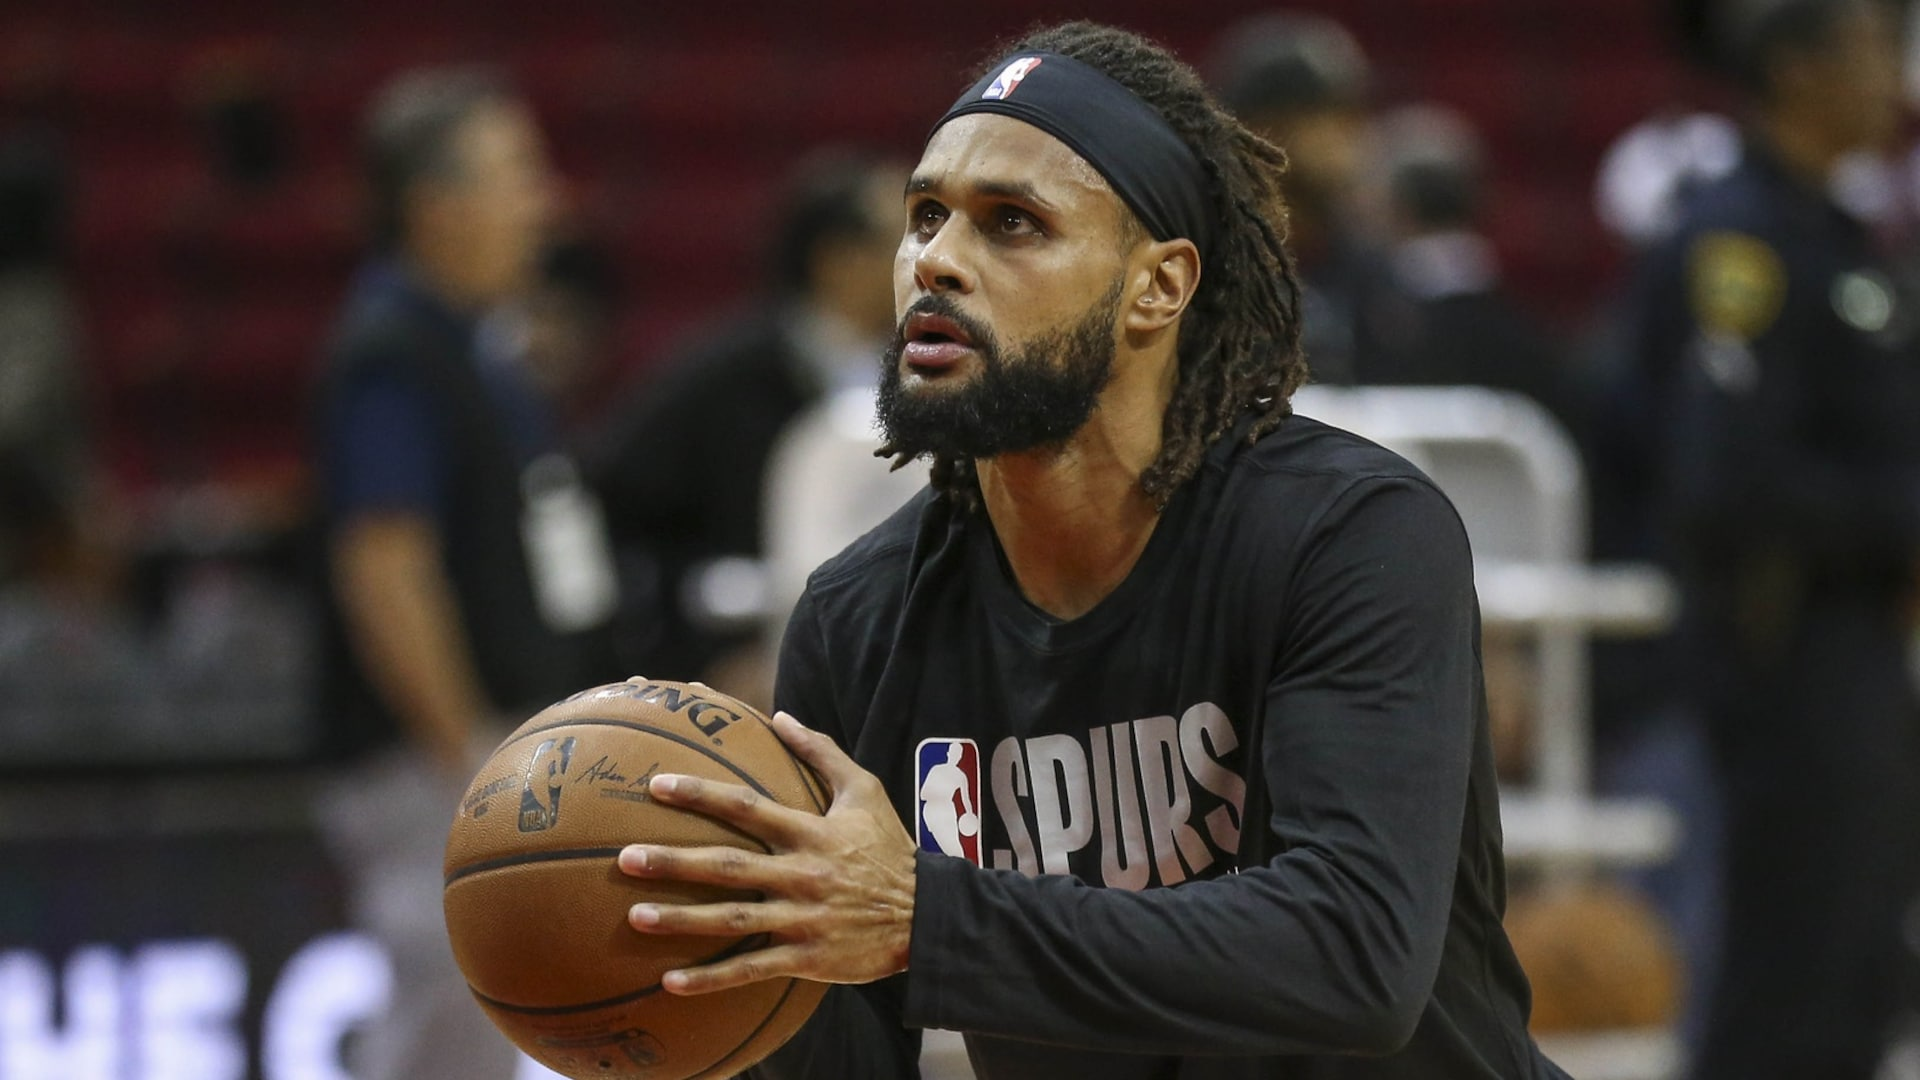 Patty Mills donating $1 million to fight racism